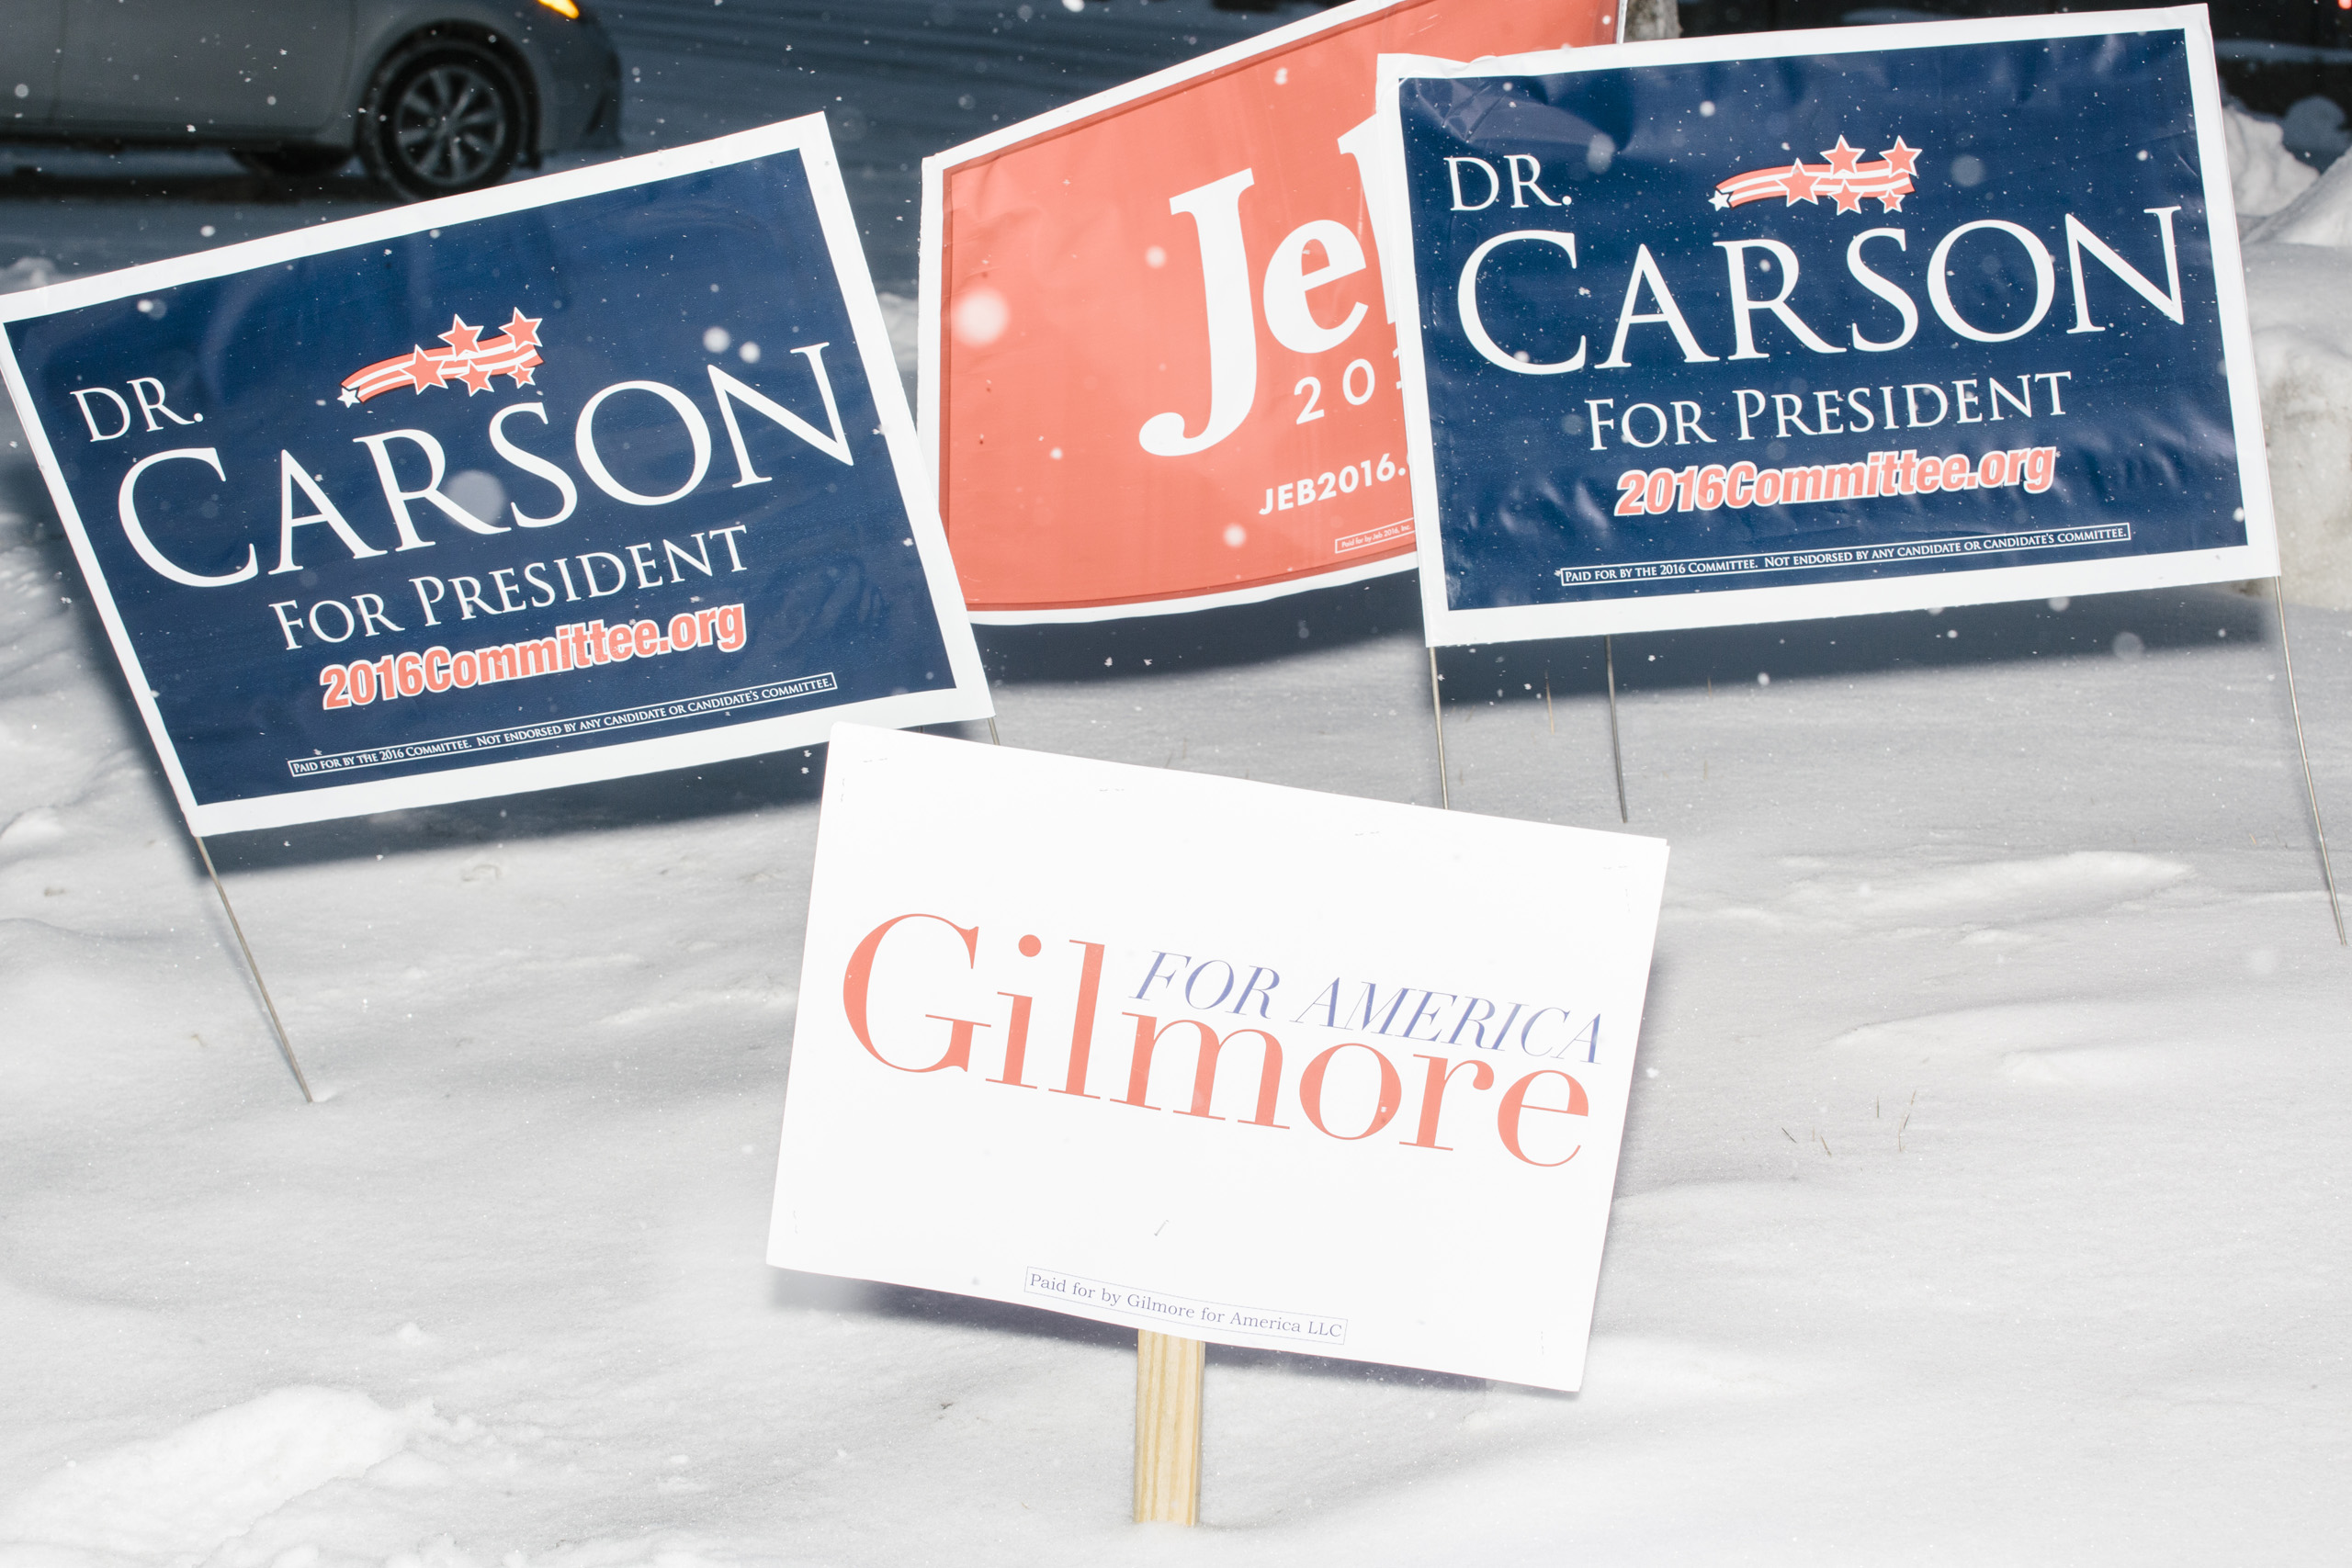 A campaign sign for former Virginia governor and Republican presidential candidate Jim Gilmore stands in the snow among those of other Republican presidential candidates on Granite Street in Manchester, New Hampshire, on Mon., Feb. 8, 2016.